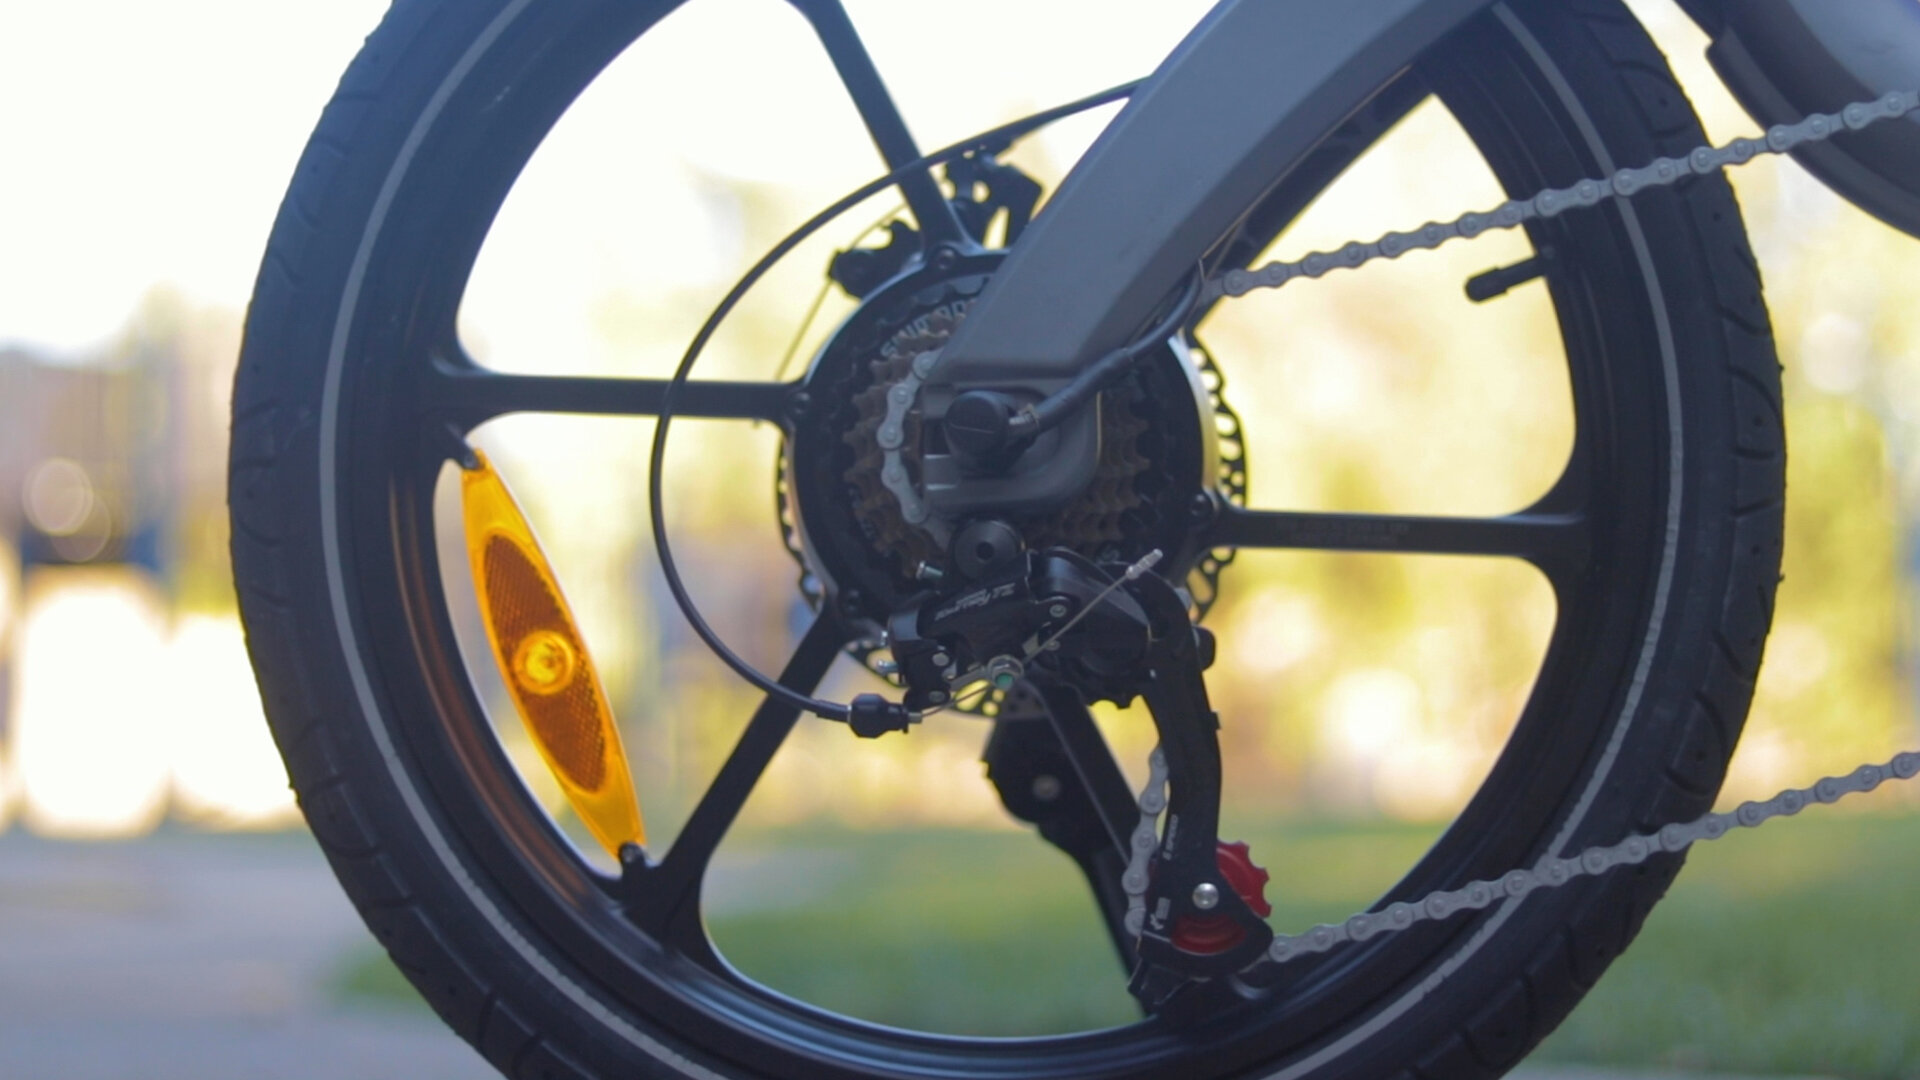 flowdot-electric-bike-review-2019-shimano-tourney-derailleur.jpg